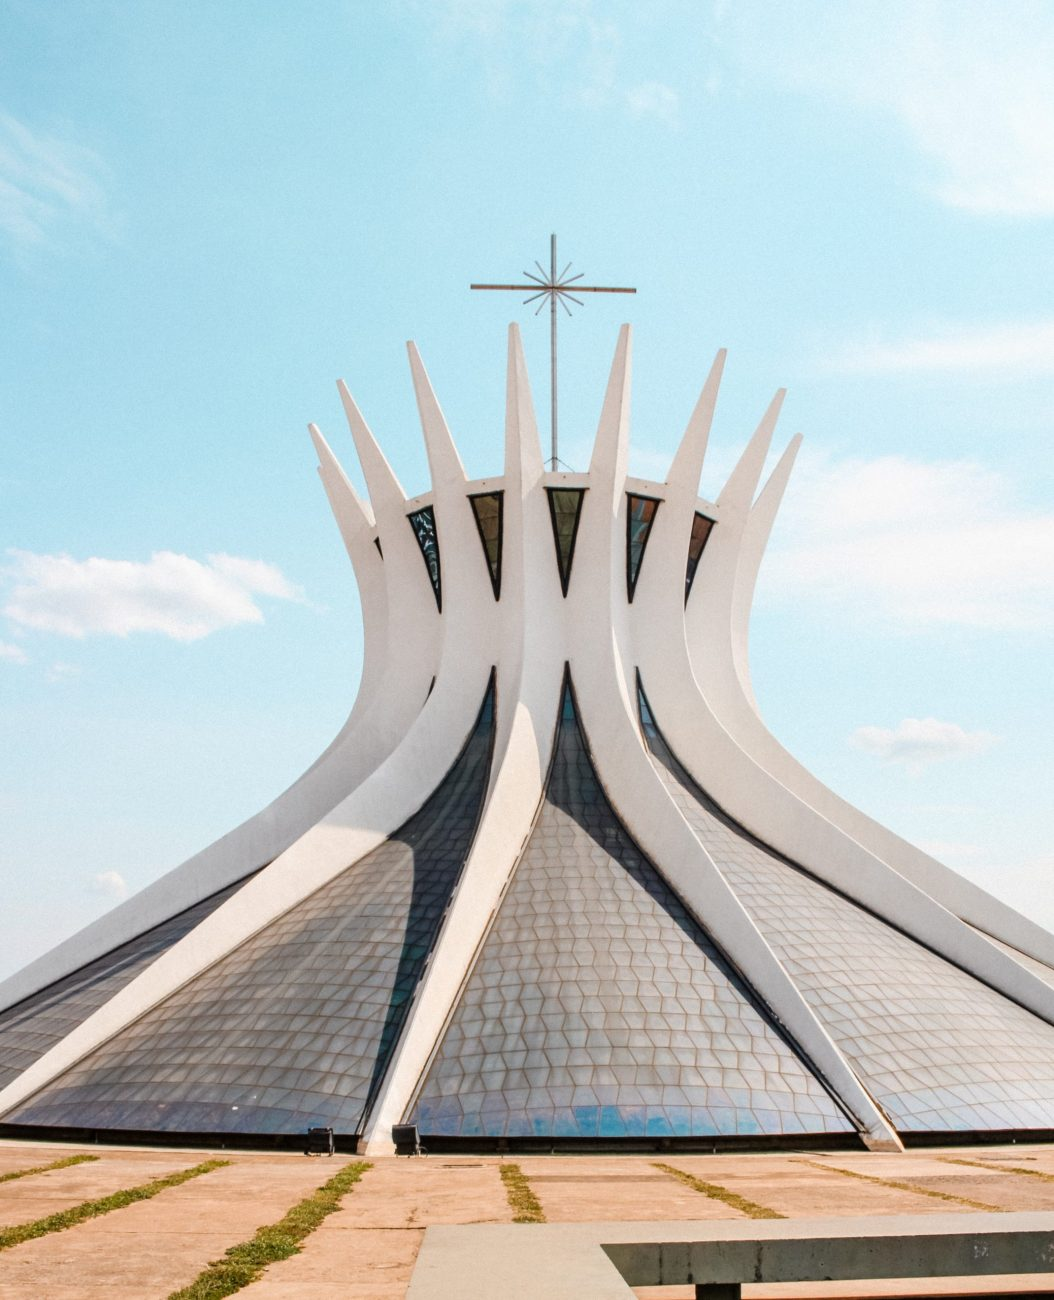 Cathedral of Brasília, Brazil-unsplash